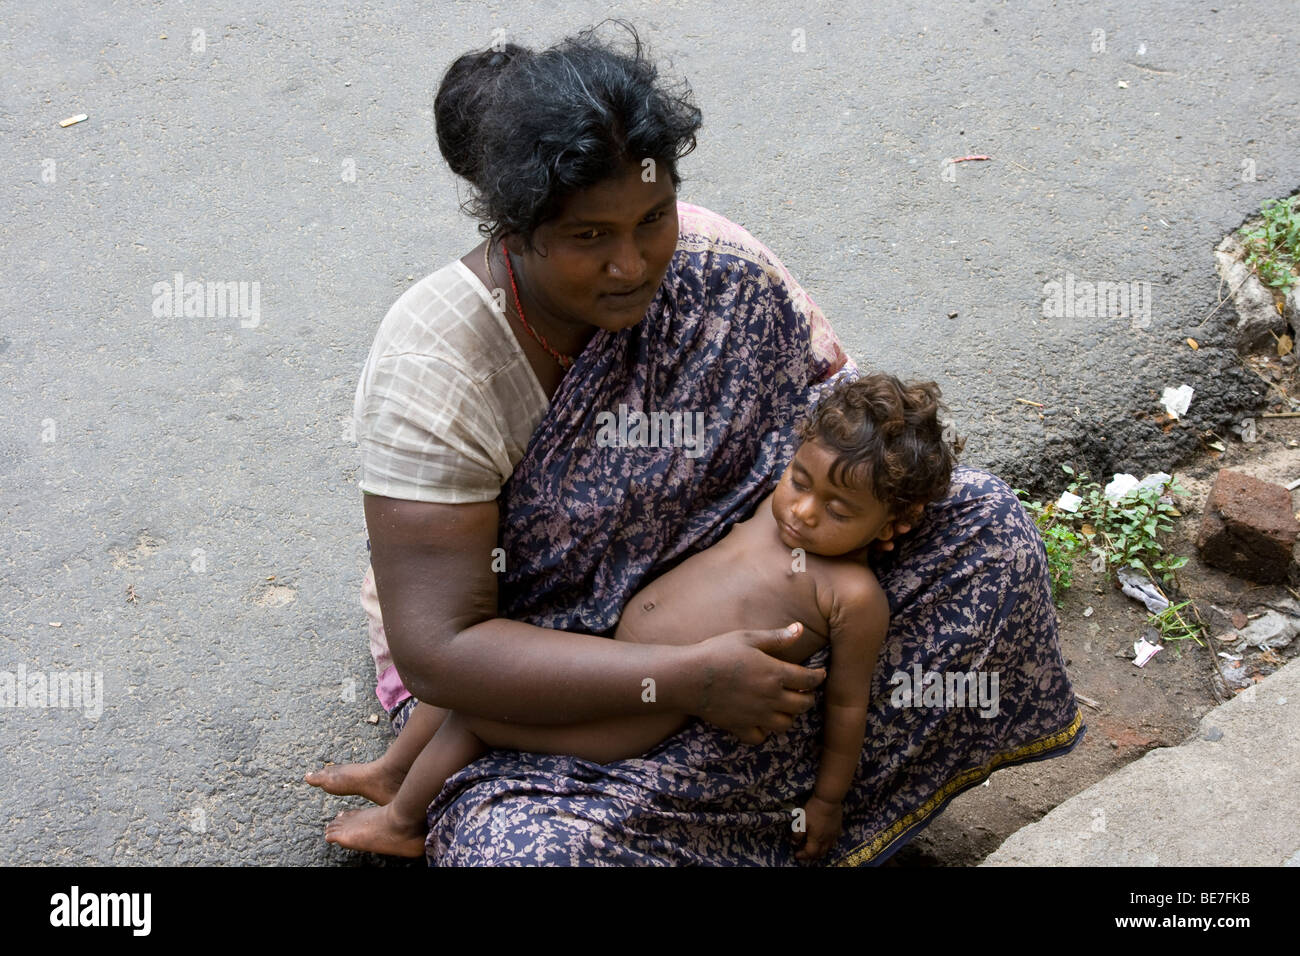 Woman with baby begging in the street in Pondicherry India Stock Photo